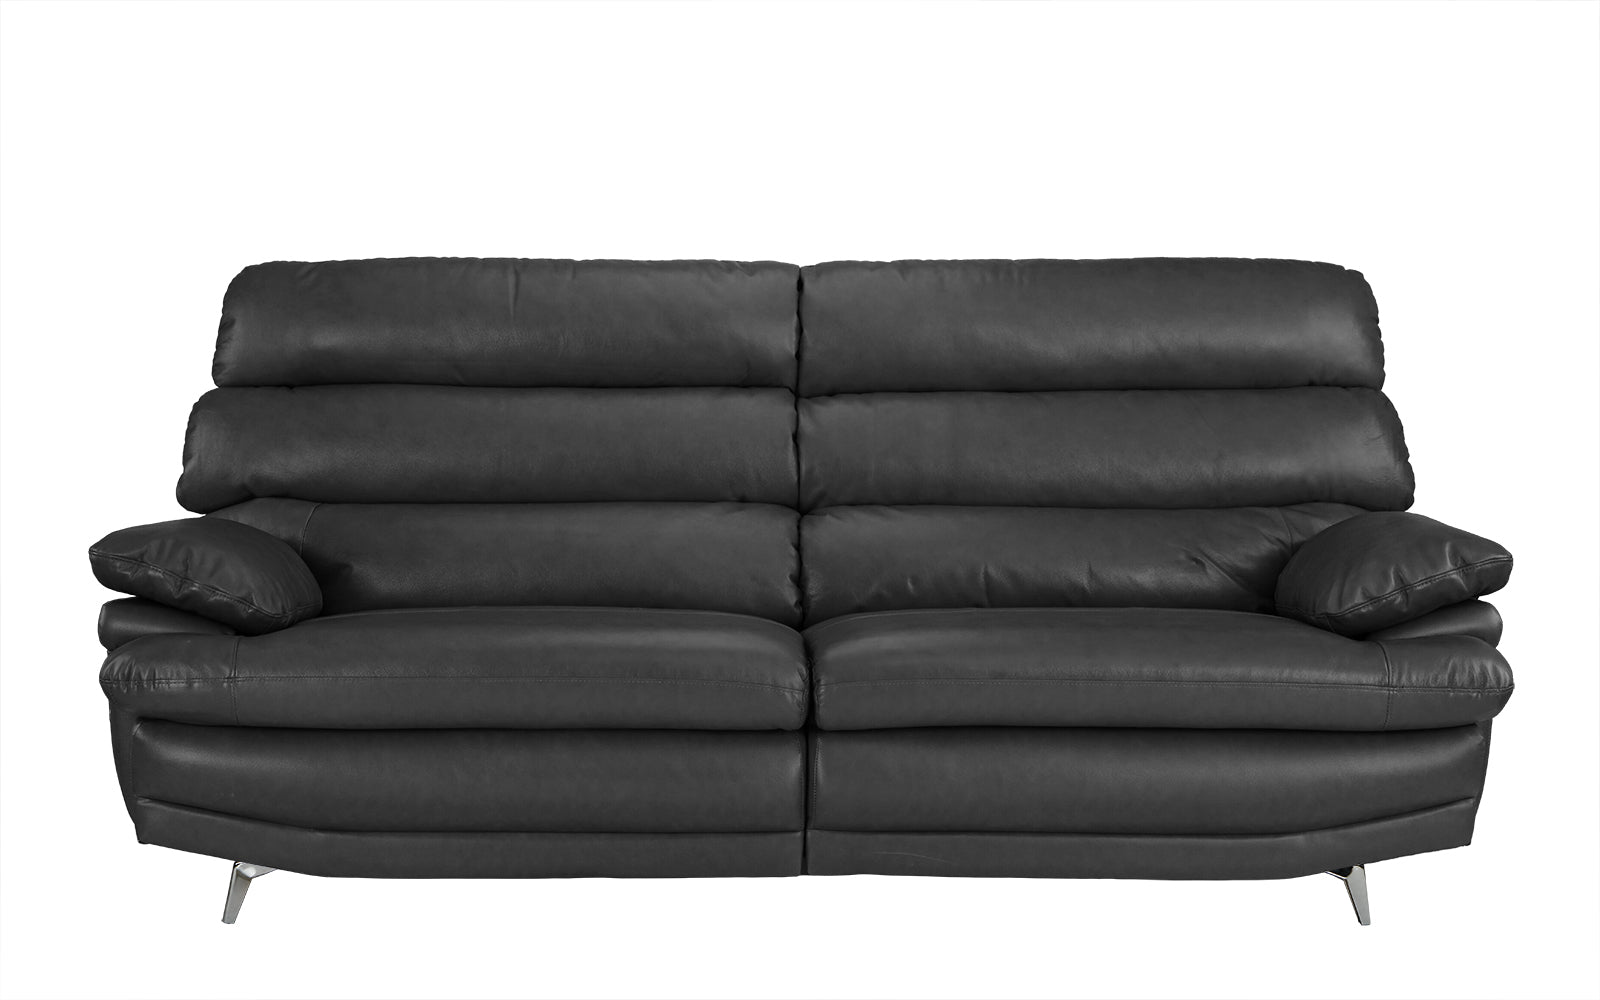 Wave Leather Sofa Image